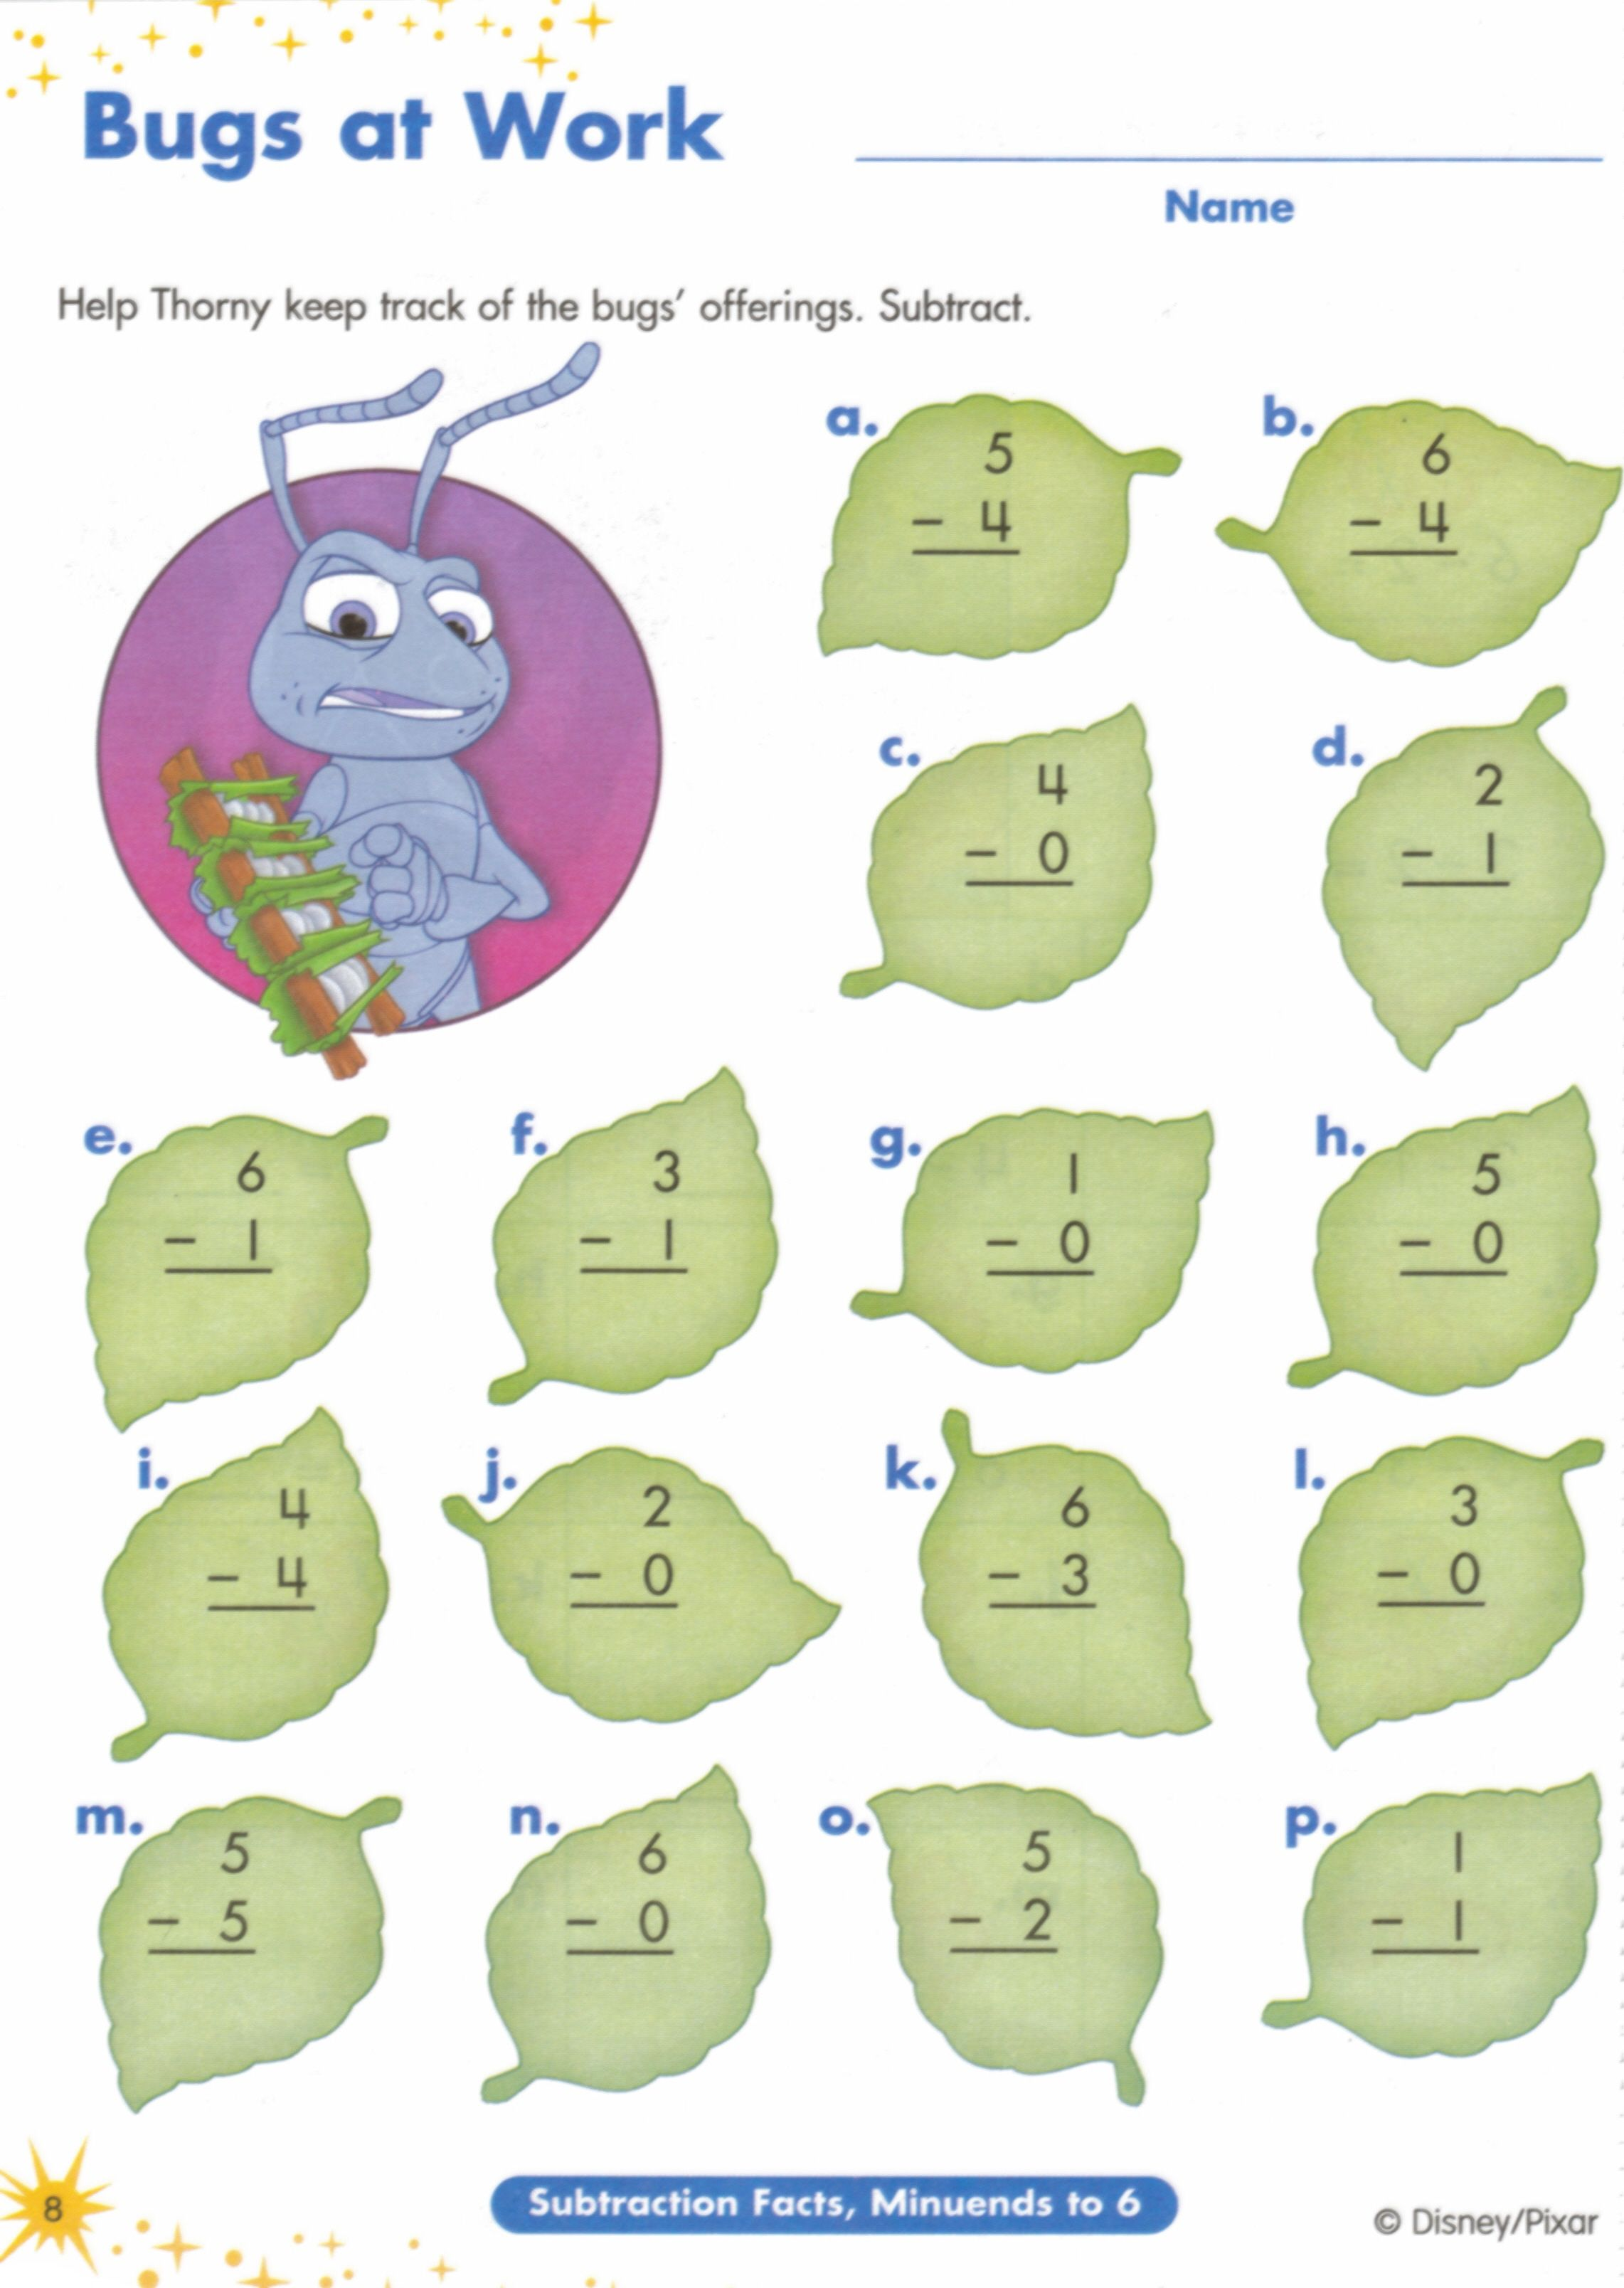 Proatmealus  Fascinating  Images About Worksheets On Pinterest  Fun Facts For Kids  With Licious  Images About Worksheets On Pinterest  Fun Facts For Kids Earth Day Worksheets And Jungles With Delectable Life Insurance Worksheet Also W Personal Allowances Worksheet Help In Addition Figurative Language Practice Worksheet And Th Grade Decimals Worksheets As Well As Molecular Shape Worksheet Additionally Roots And Affixes Worksheets From Pinterestcom With Proatmealus  Licious  Images About Worksheets On Pinterest  Fun Facts For Kids  With Delectable  Images About Worksheets On Pinterest  Fun Facts For Kids Earth Day Worksheets And Jungles And Fascinating Life Insurance Worksheet Also W Personal Allowances Worksheet Help In Addition Figurative Language Practice Worksheet From Pinterestcom